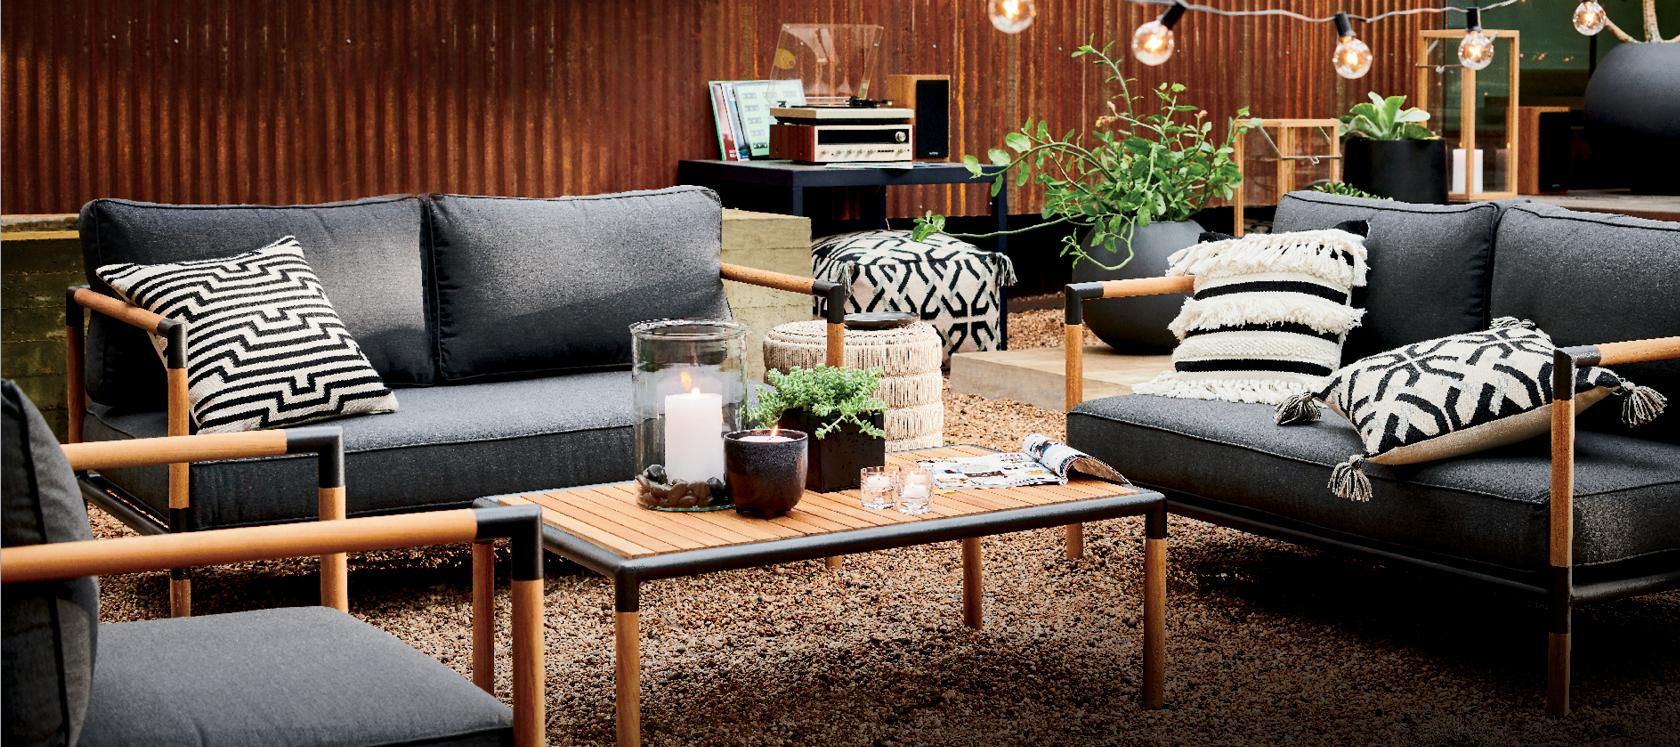 best outdoor patio furniture crate and barrel dsc otdrcllctnbara room essentials accent table instructions narrow chairside with drawers threshold marble coffee corner sofa decor